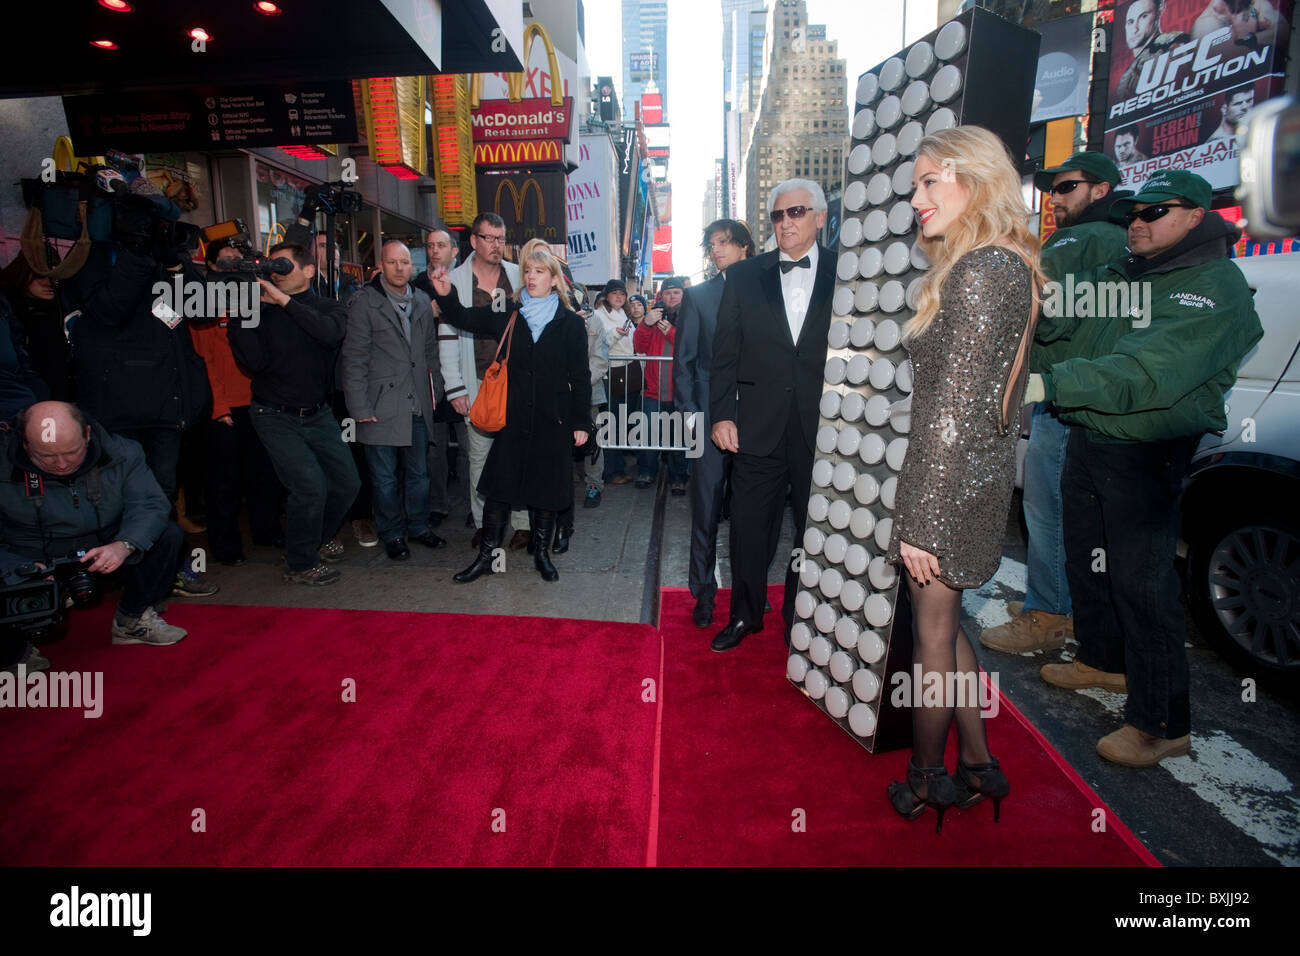 The seven-foot-tall numeral '1' walks the red carpet to complete the 2-0-1 sign in NYC's Times Square - Stock Image